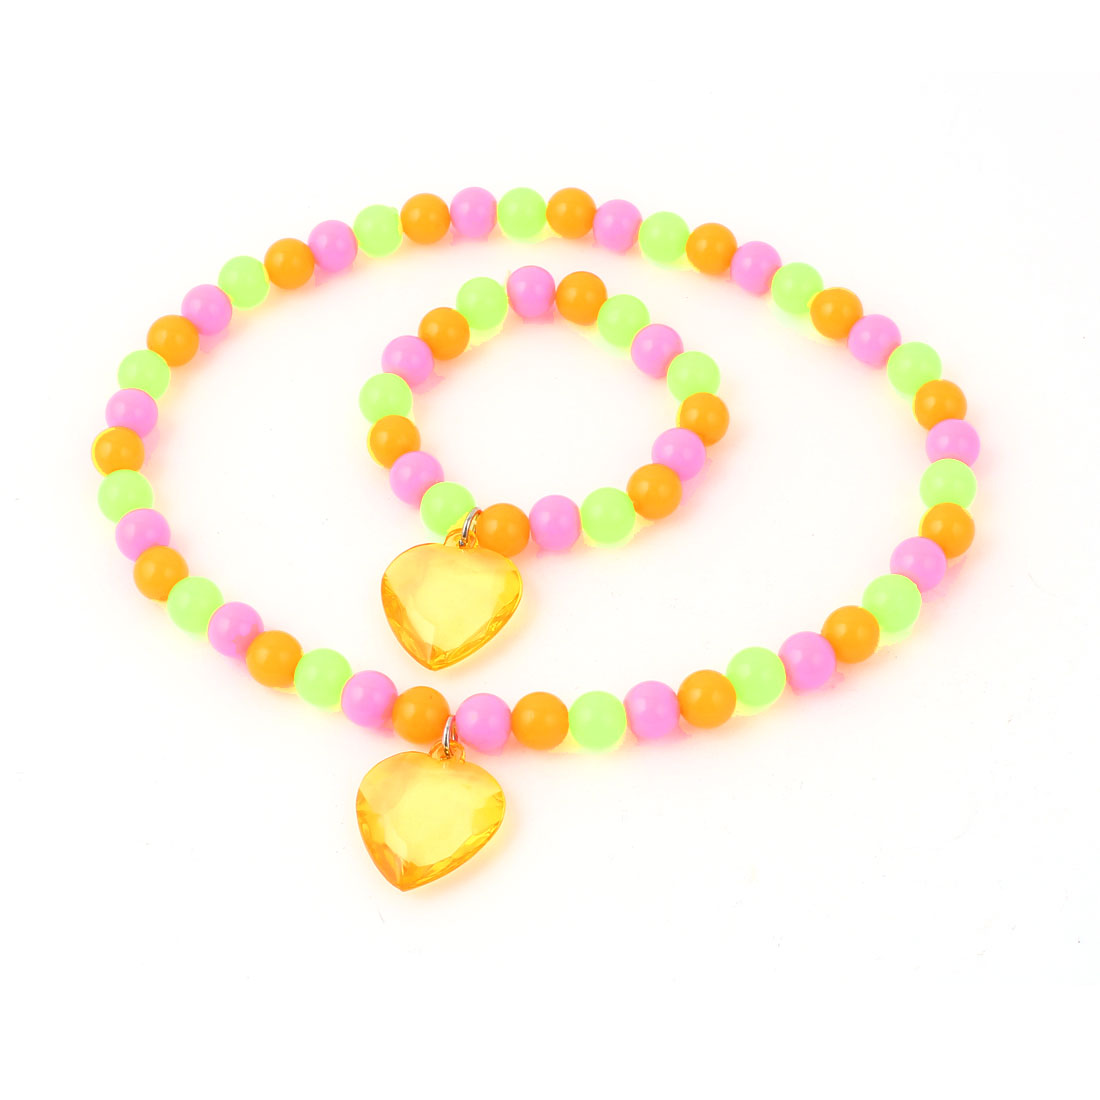 Green Pink Orange Stretchy Heart Shaped Pendant Beads Necklace w Bracelet for Lady